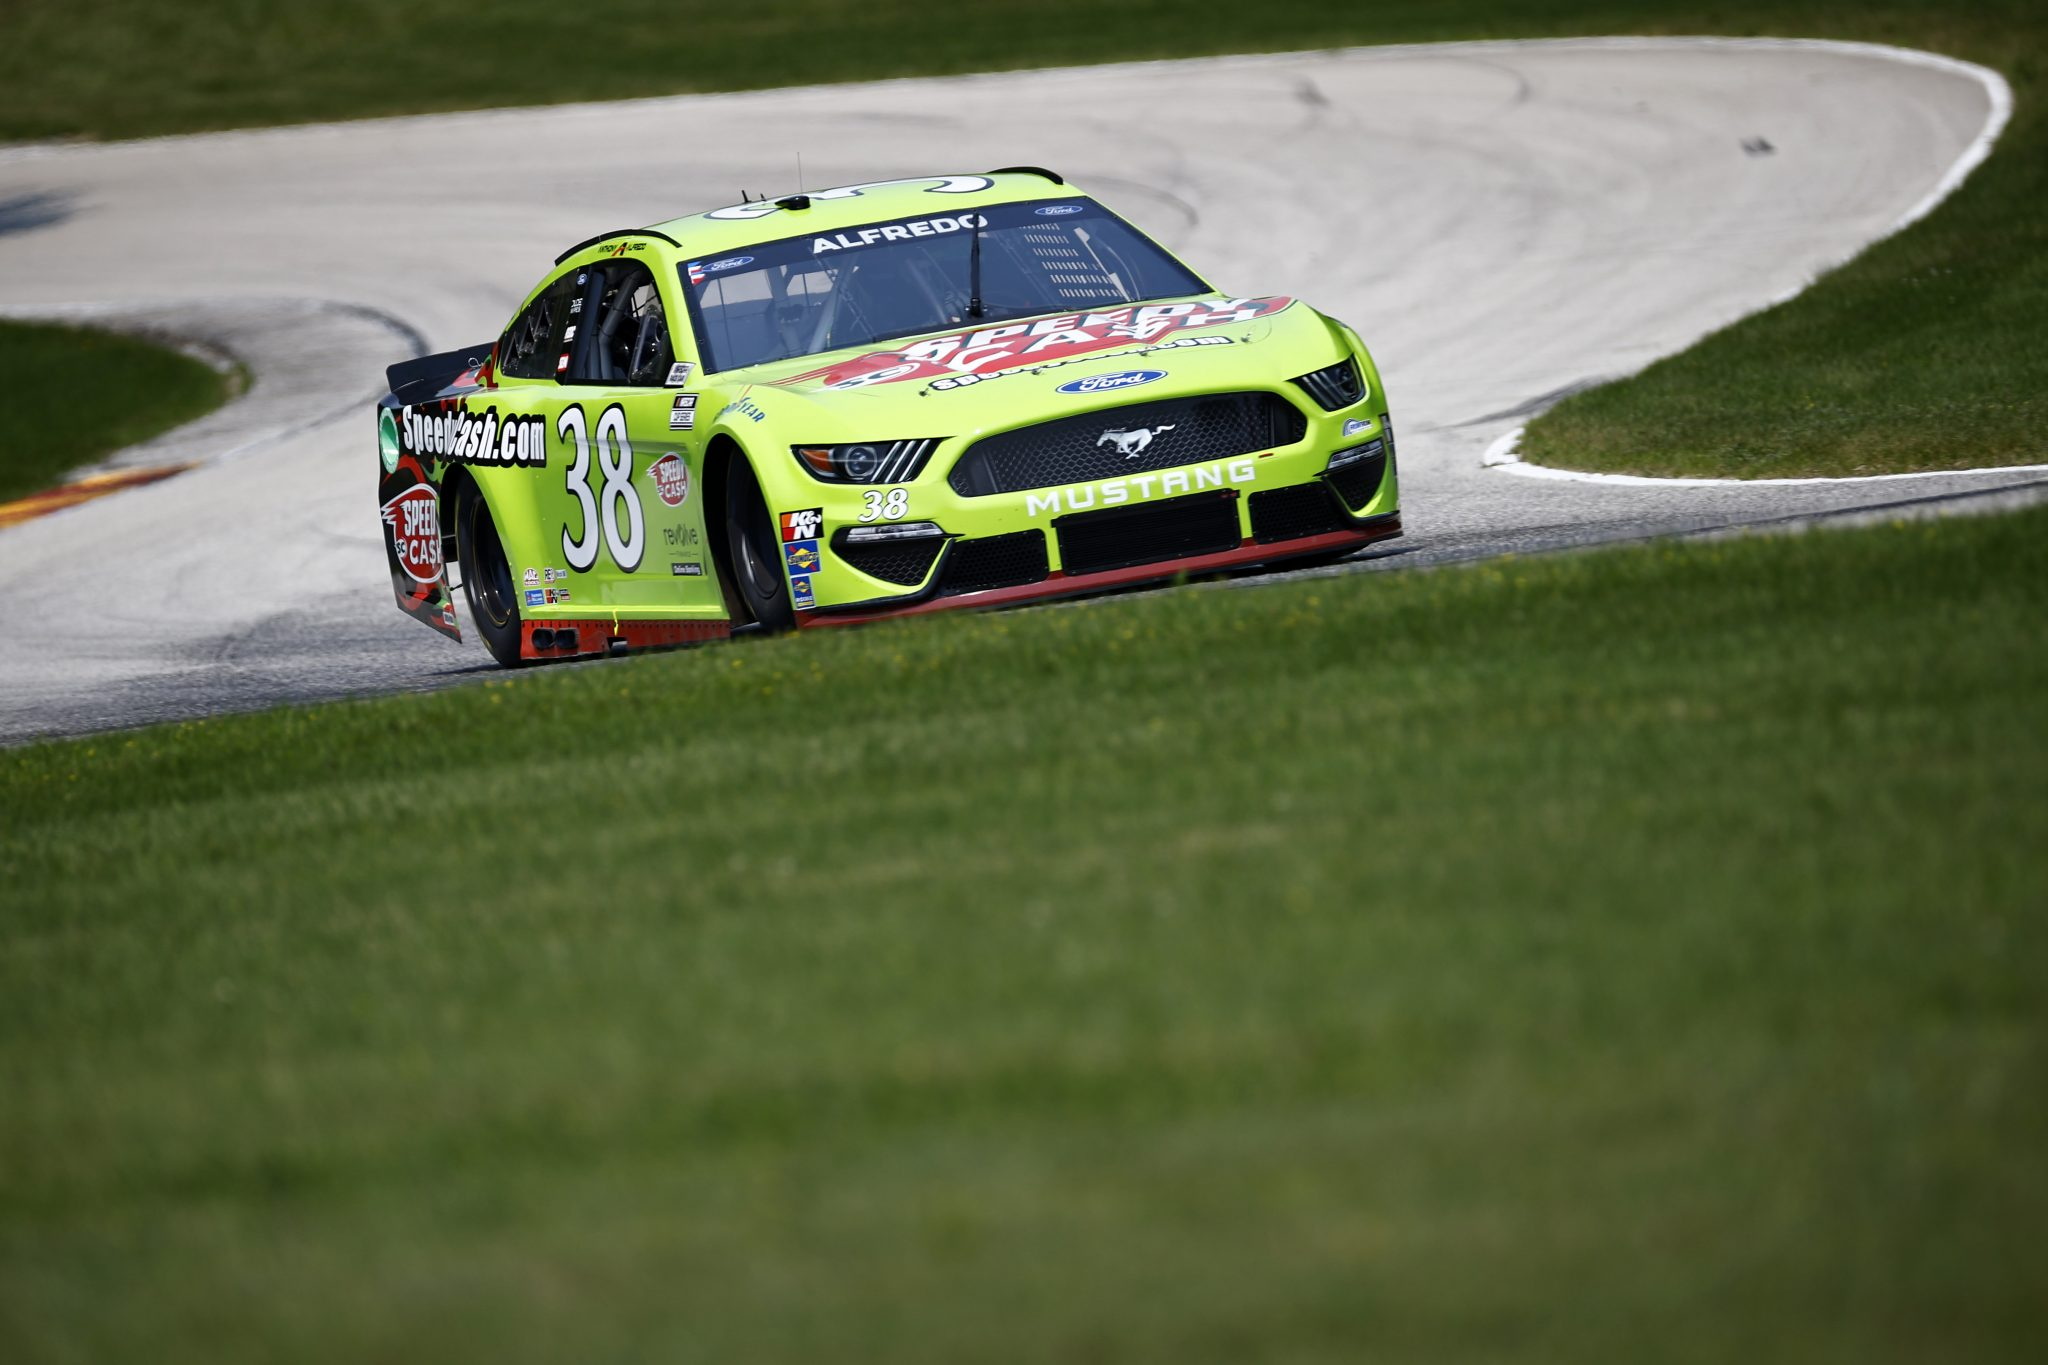 ELKHART LAKE, WISCONSIN - JULY 03: Anthony Alfredo, driver of the #38 Speedy Cash Ford, drives during practice for the NASCAR Cup Series Jockey Made in America 250 Presented by Kwik Trip at Road America on July 03, 2021 in Elkhart Lake, Wisconsin. (Photo by Jared C. Tilton/Getty Images)   Getty Images